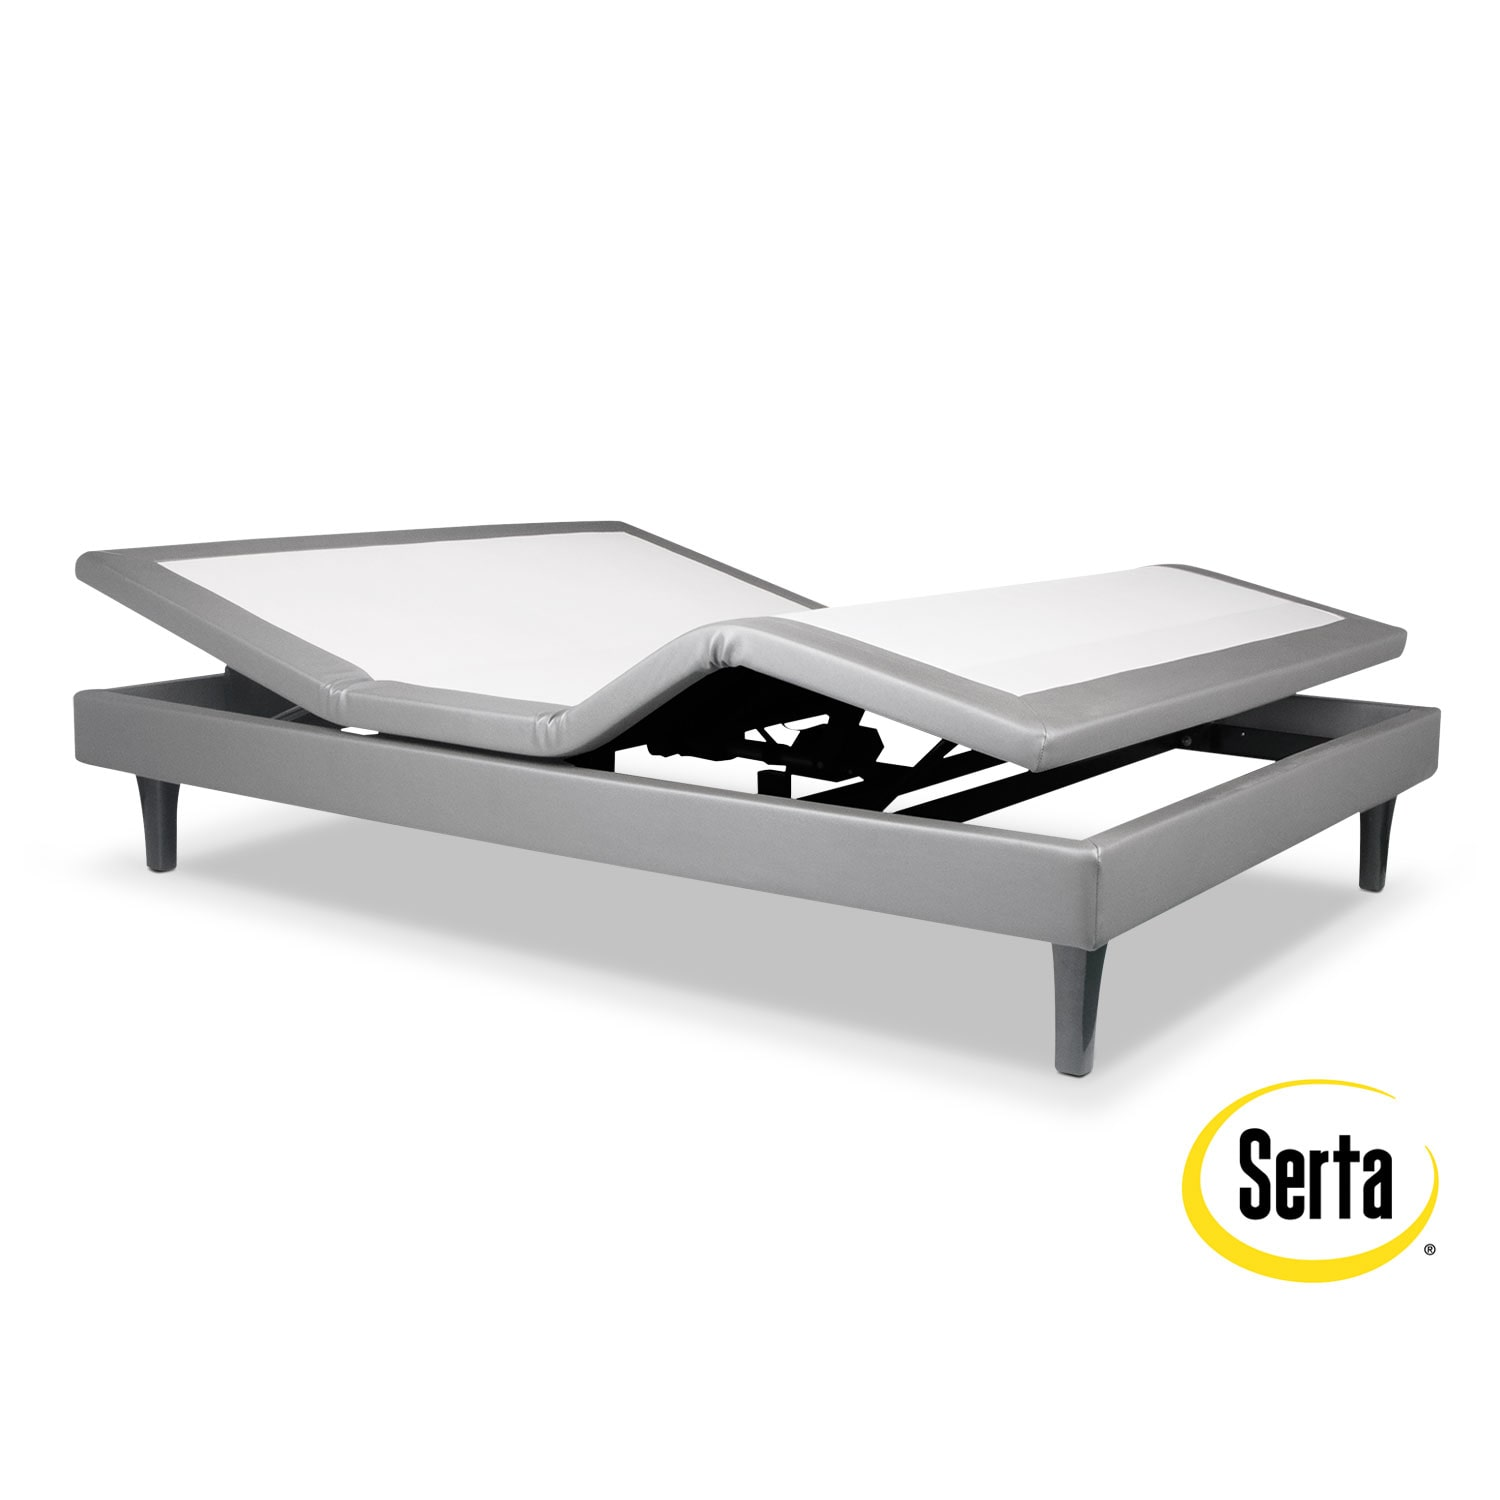 Serta Motion Perfect III California King Adjustable Base